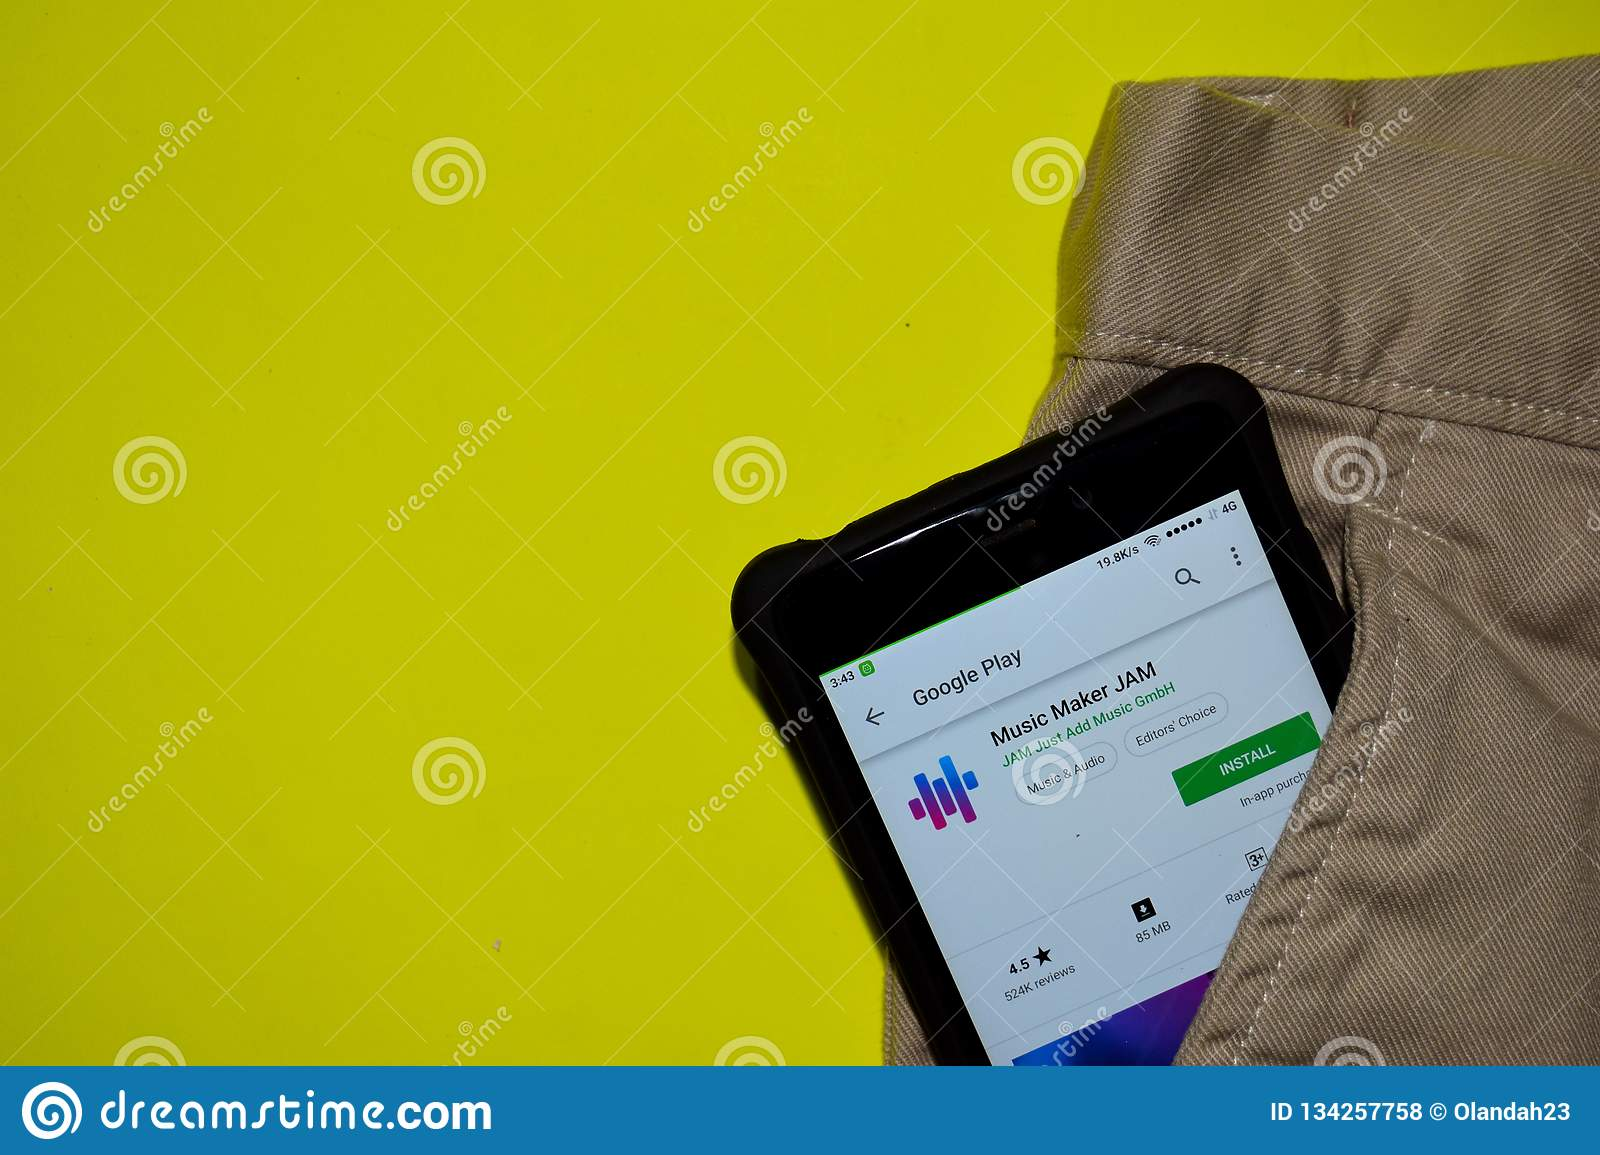 Music Maker Jam Dev Application On Smartphone Screen Editorial Stock Photo Image Of Browser 2018 134257758